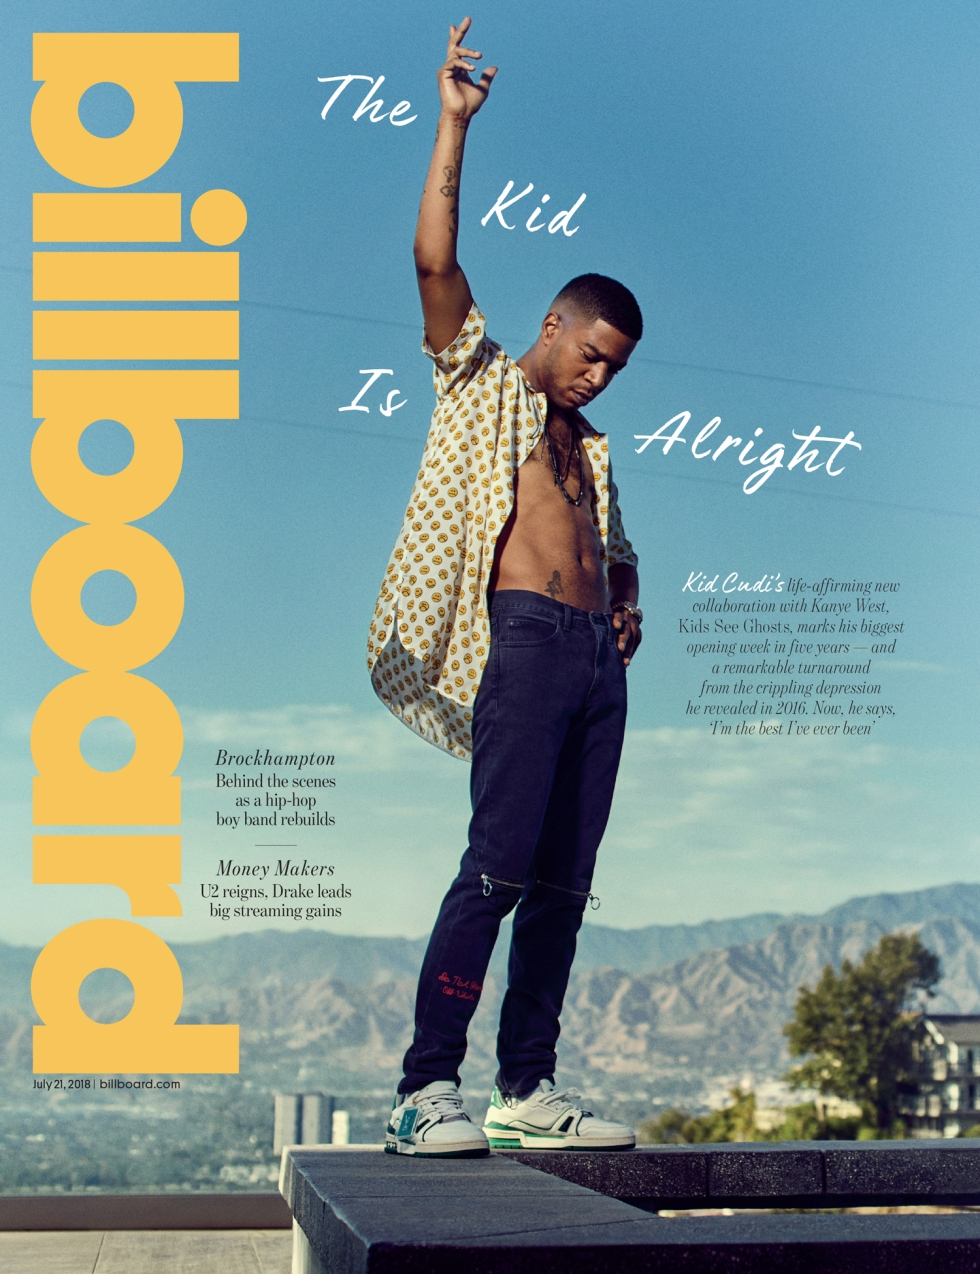 kid-cudi-bb17-cov-sy7ns-sxn1-2mxm-2018-billboard-uu-1500 (1).jpg